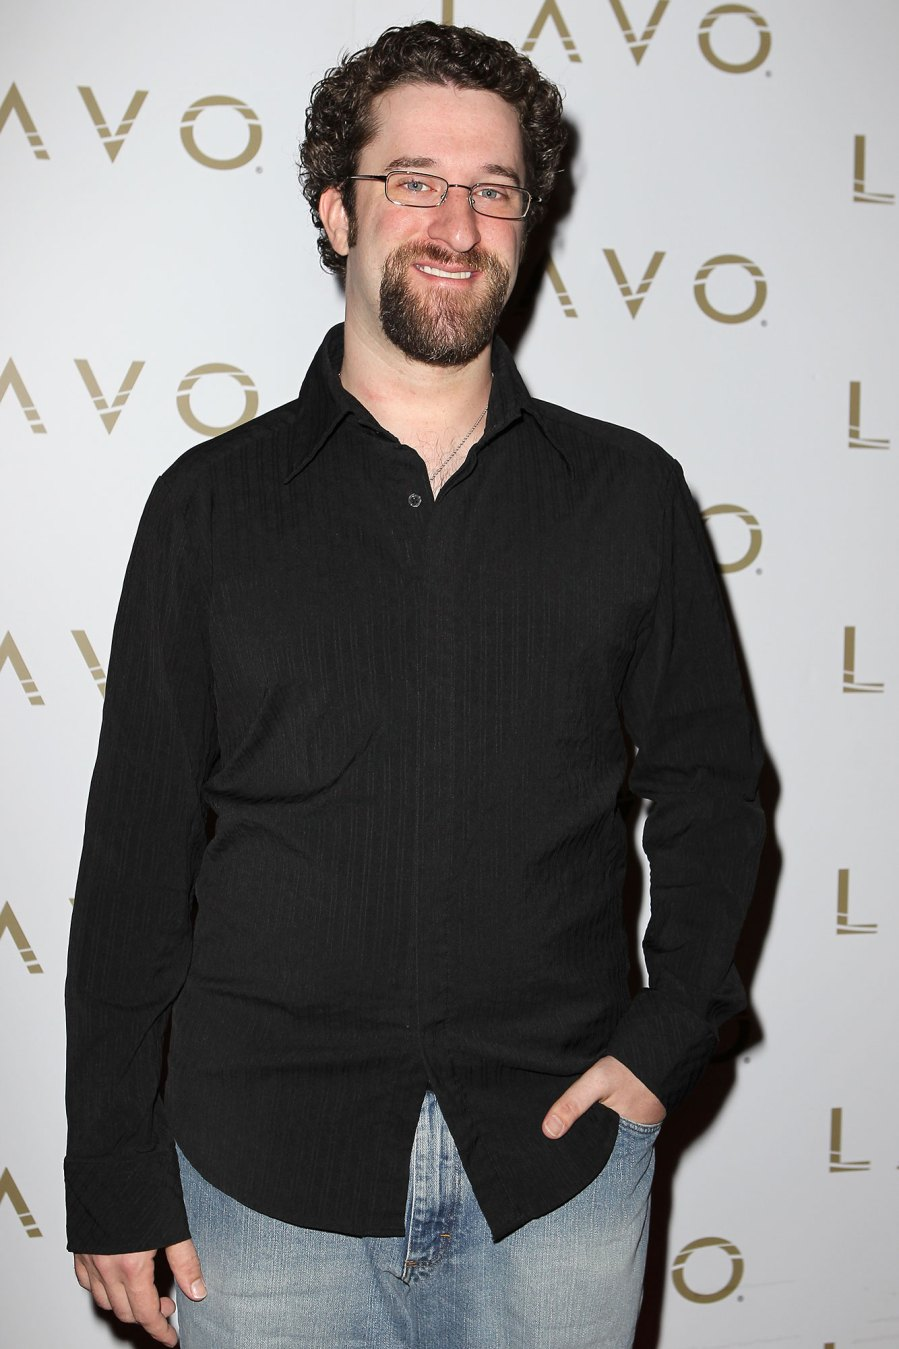 Saved by the Bell Dustin Diamond Dead After Cancer Battle